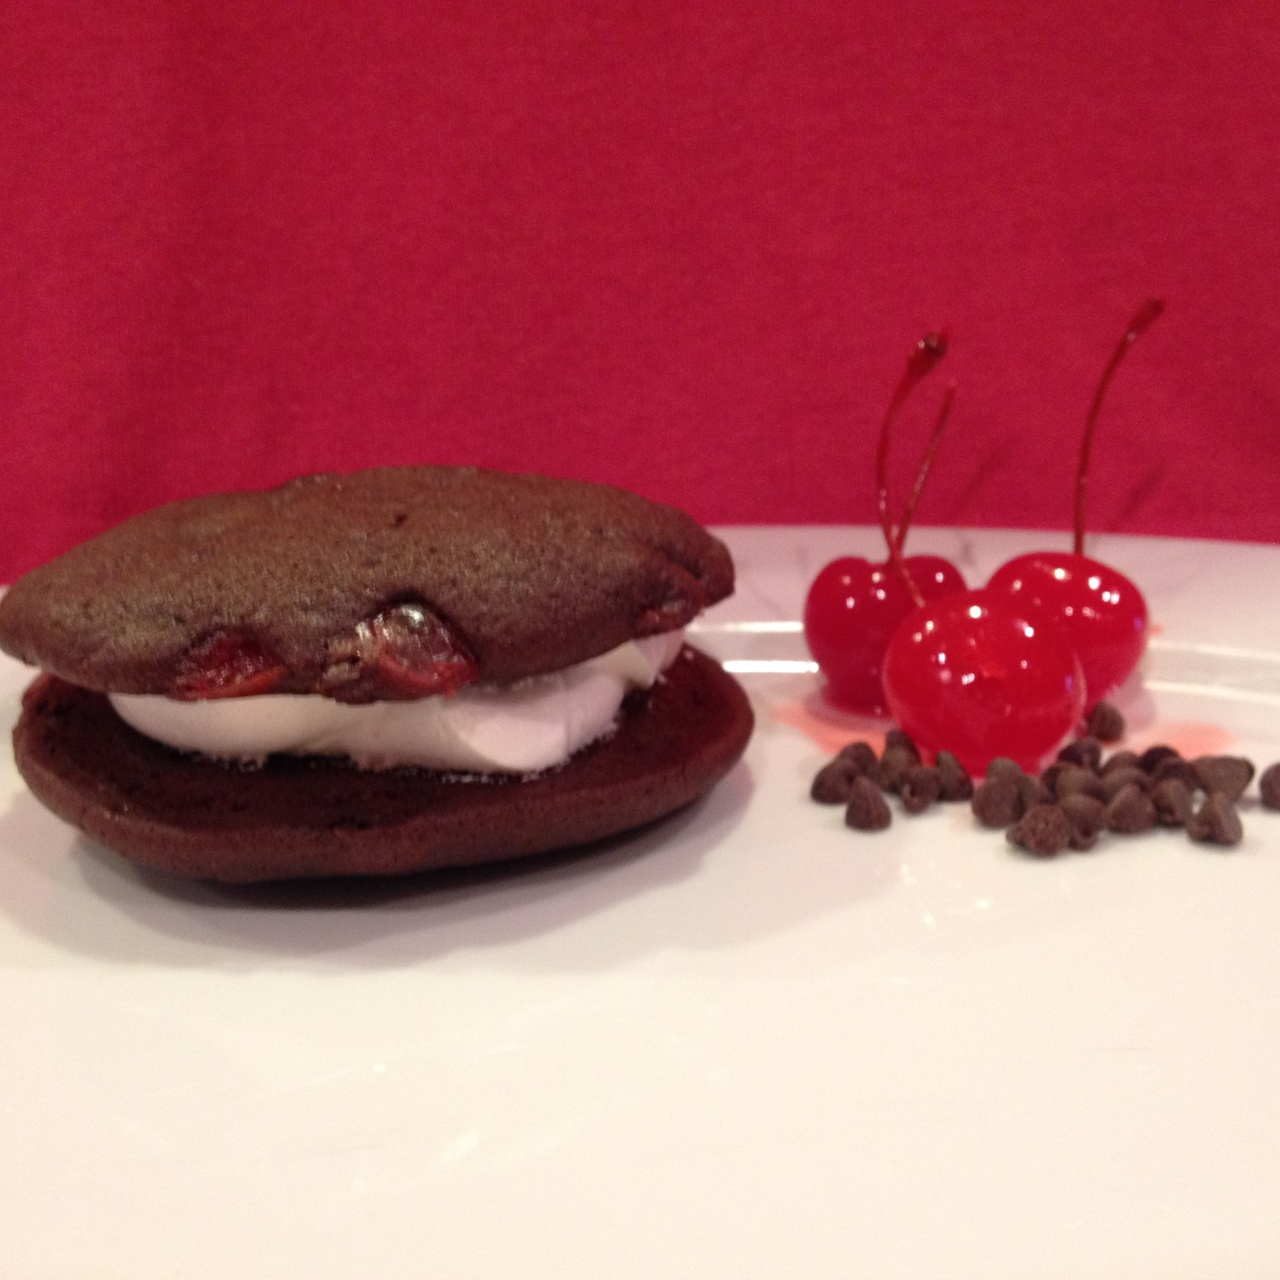 6 Pack- Large Chocolate Cherry Whoopie Pies